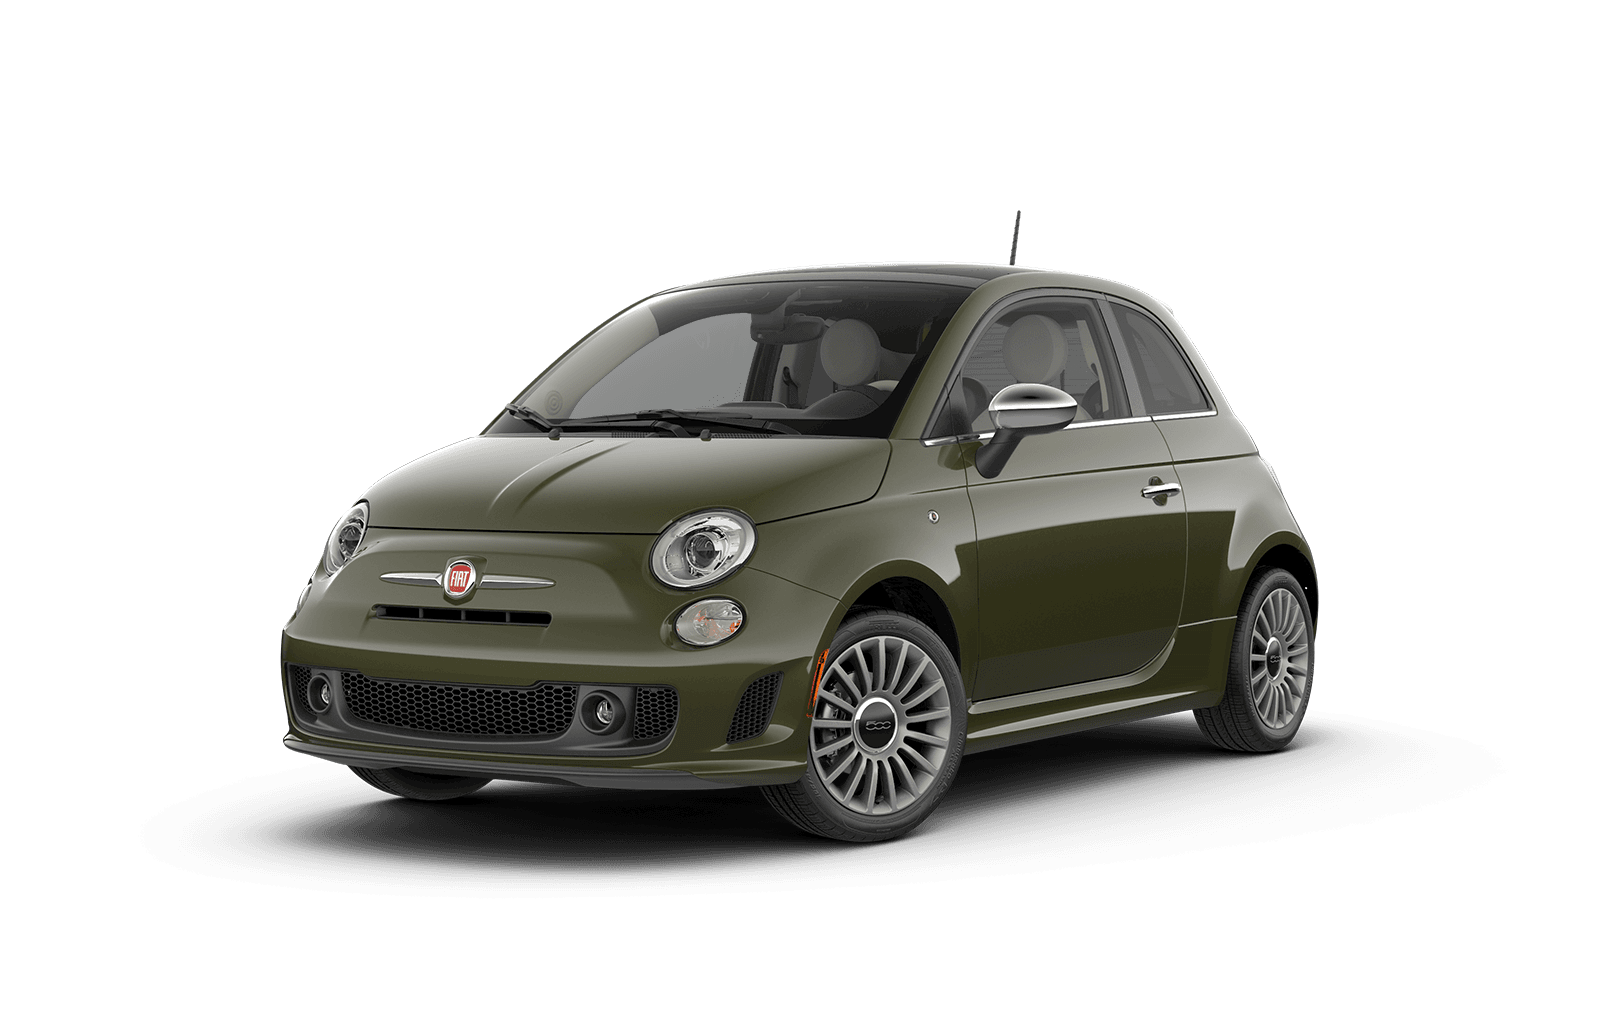 2019 FIAT 500 Full View in Olive Green with Wheels